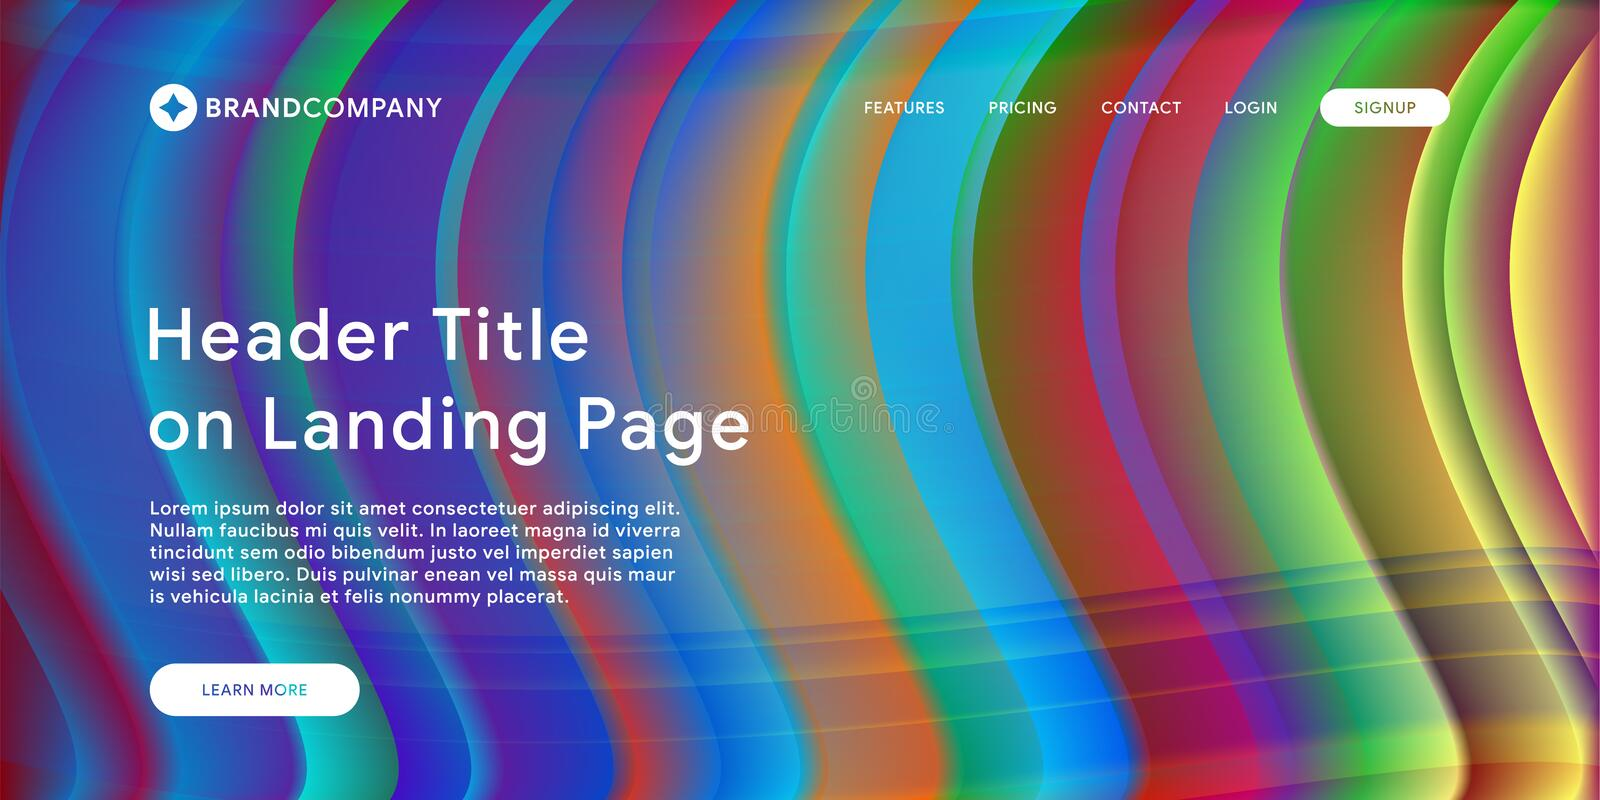 Website or mobile app landing page with illustration of Abstract Colorful Minimal Geometric Pattern Background Design and Gradient. Vector illustration of stock photos